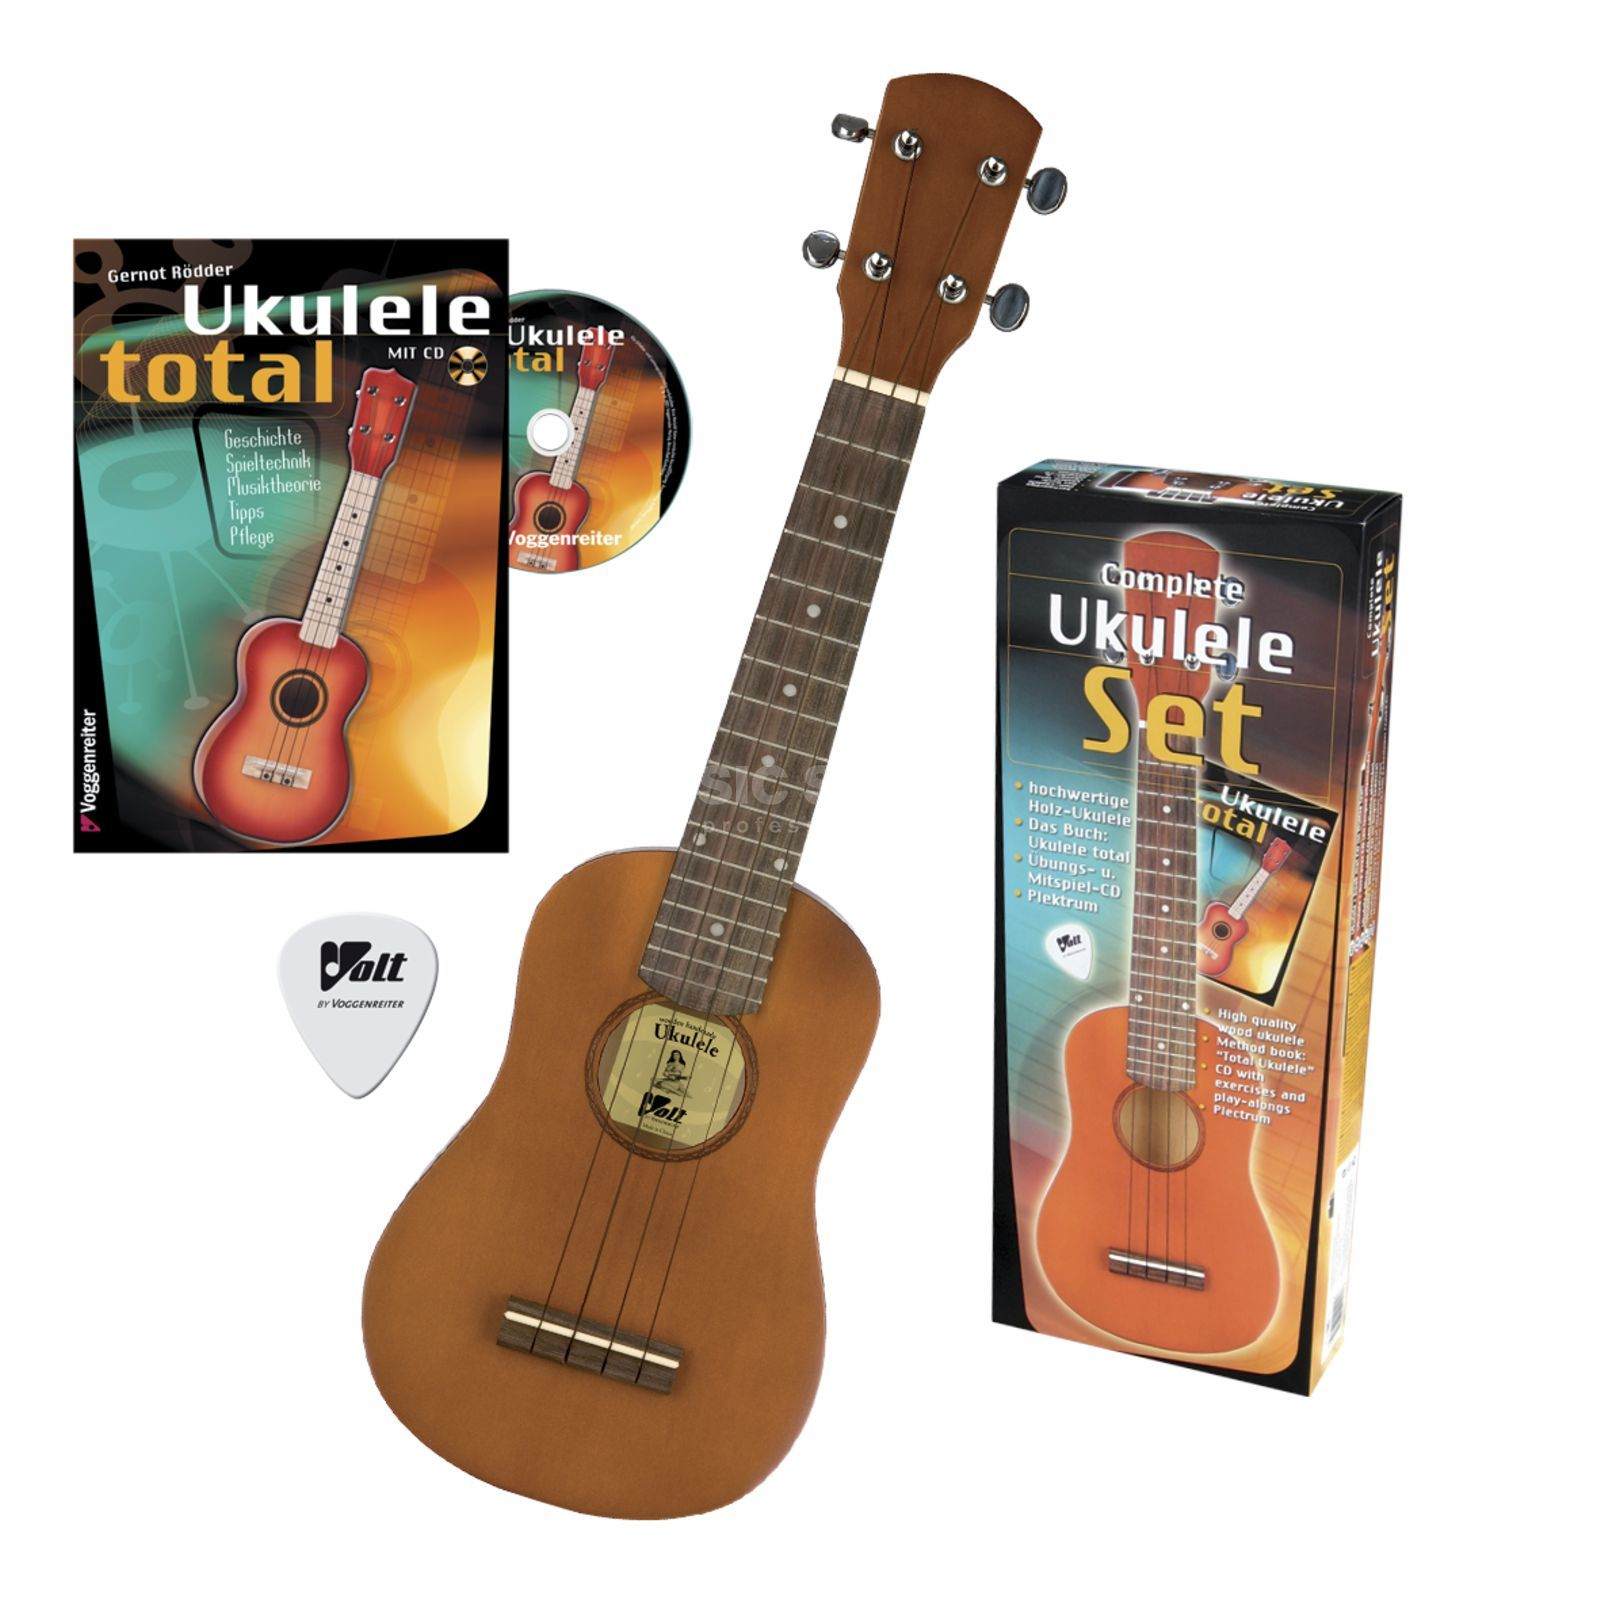 Voggenreiter Ukulelen-Set inkl. Buch with CD & Plektrum Product Image